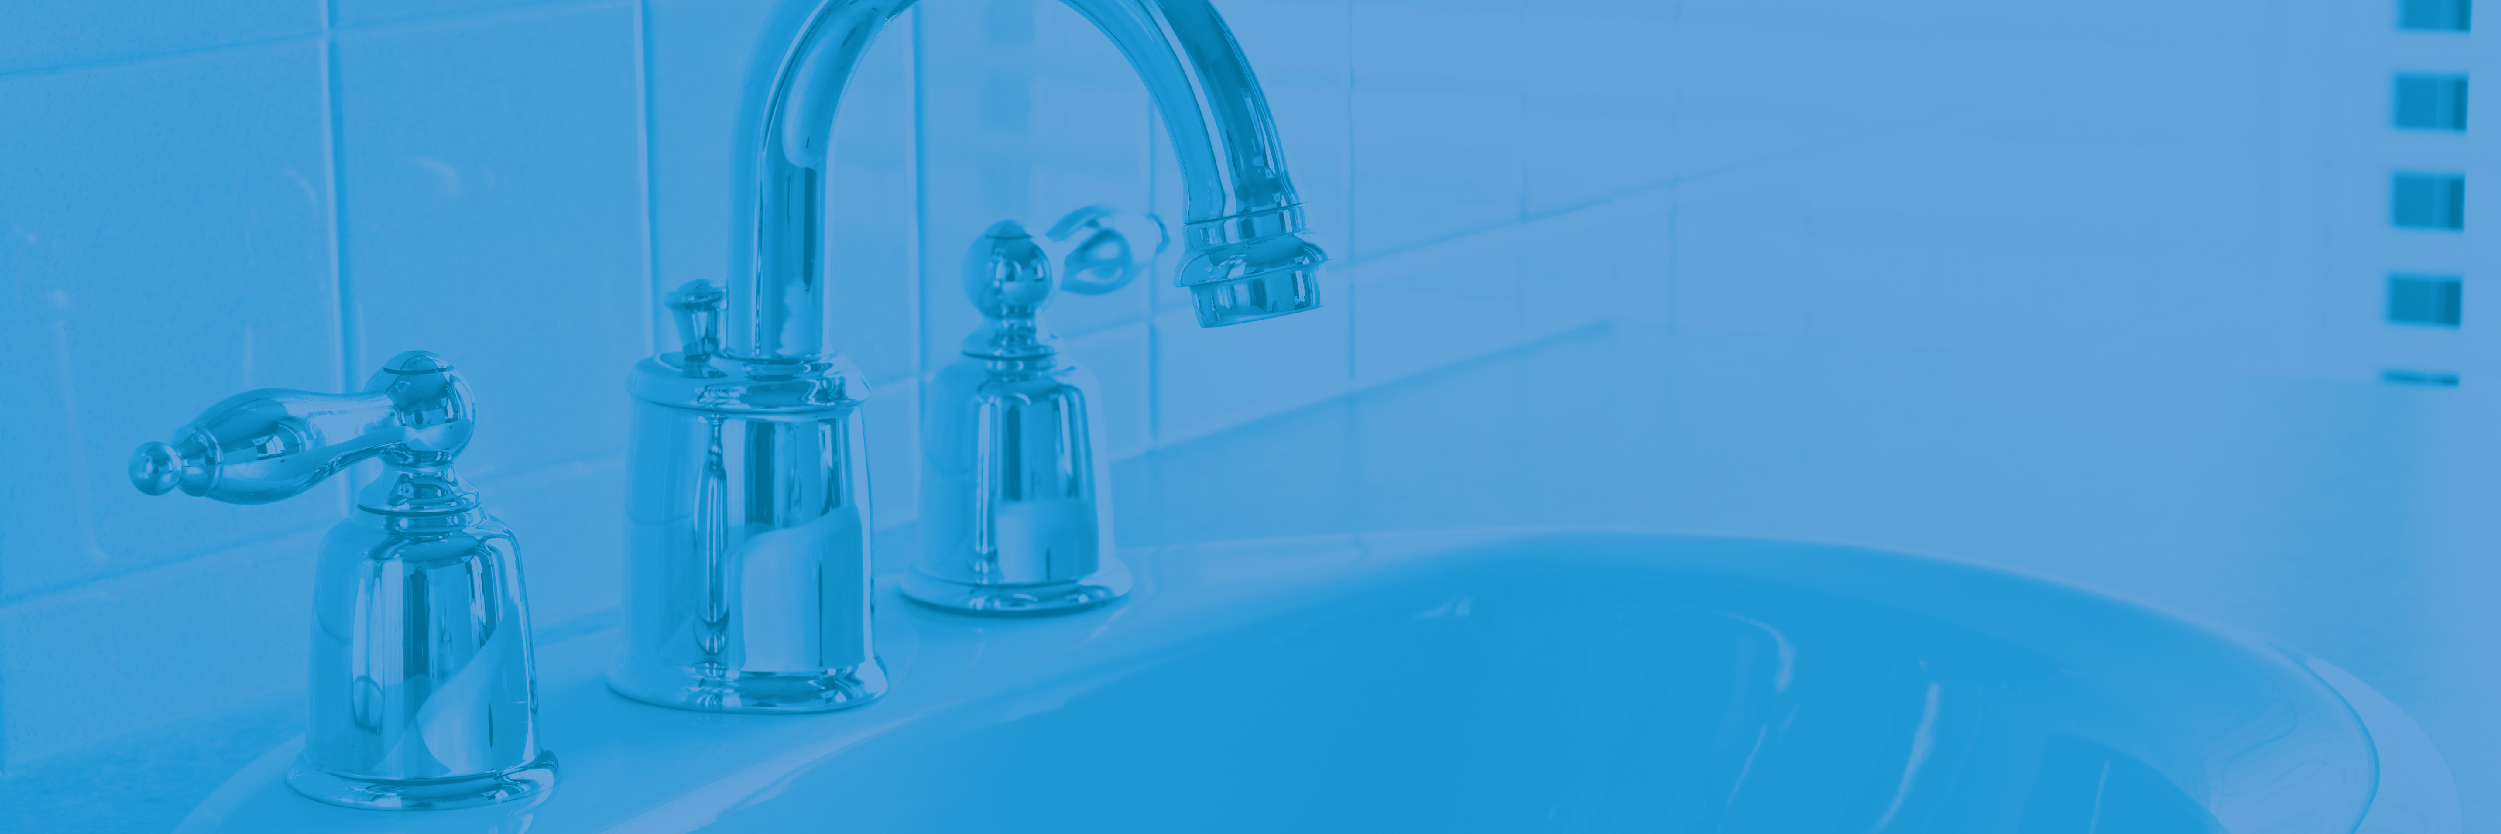 How To Clean Your Kitchen And Bathroom Faucets Super Blog